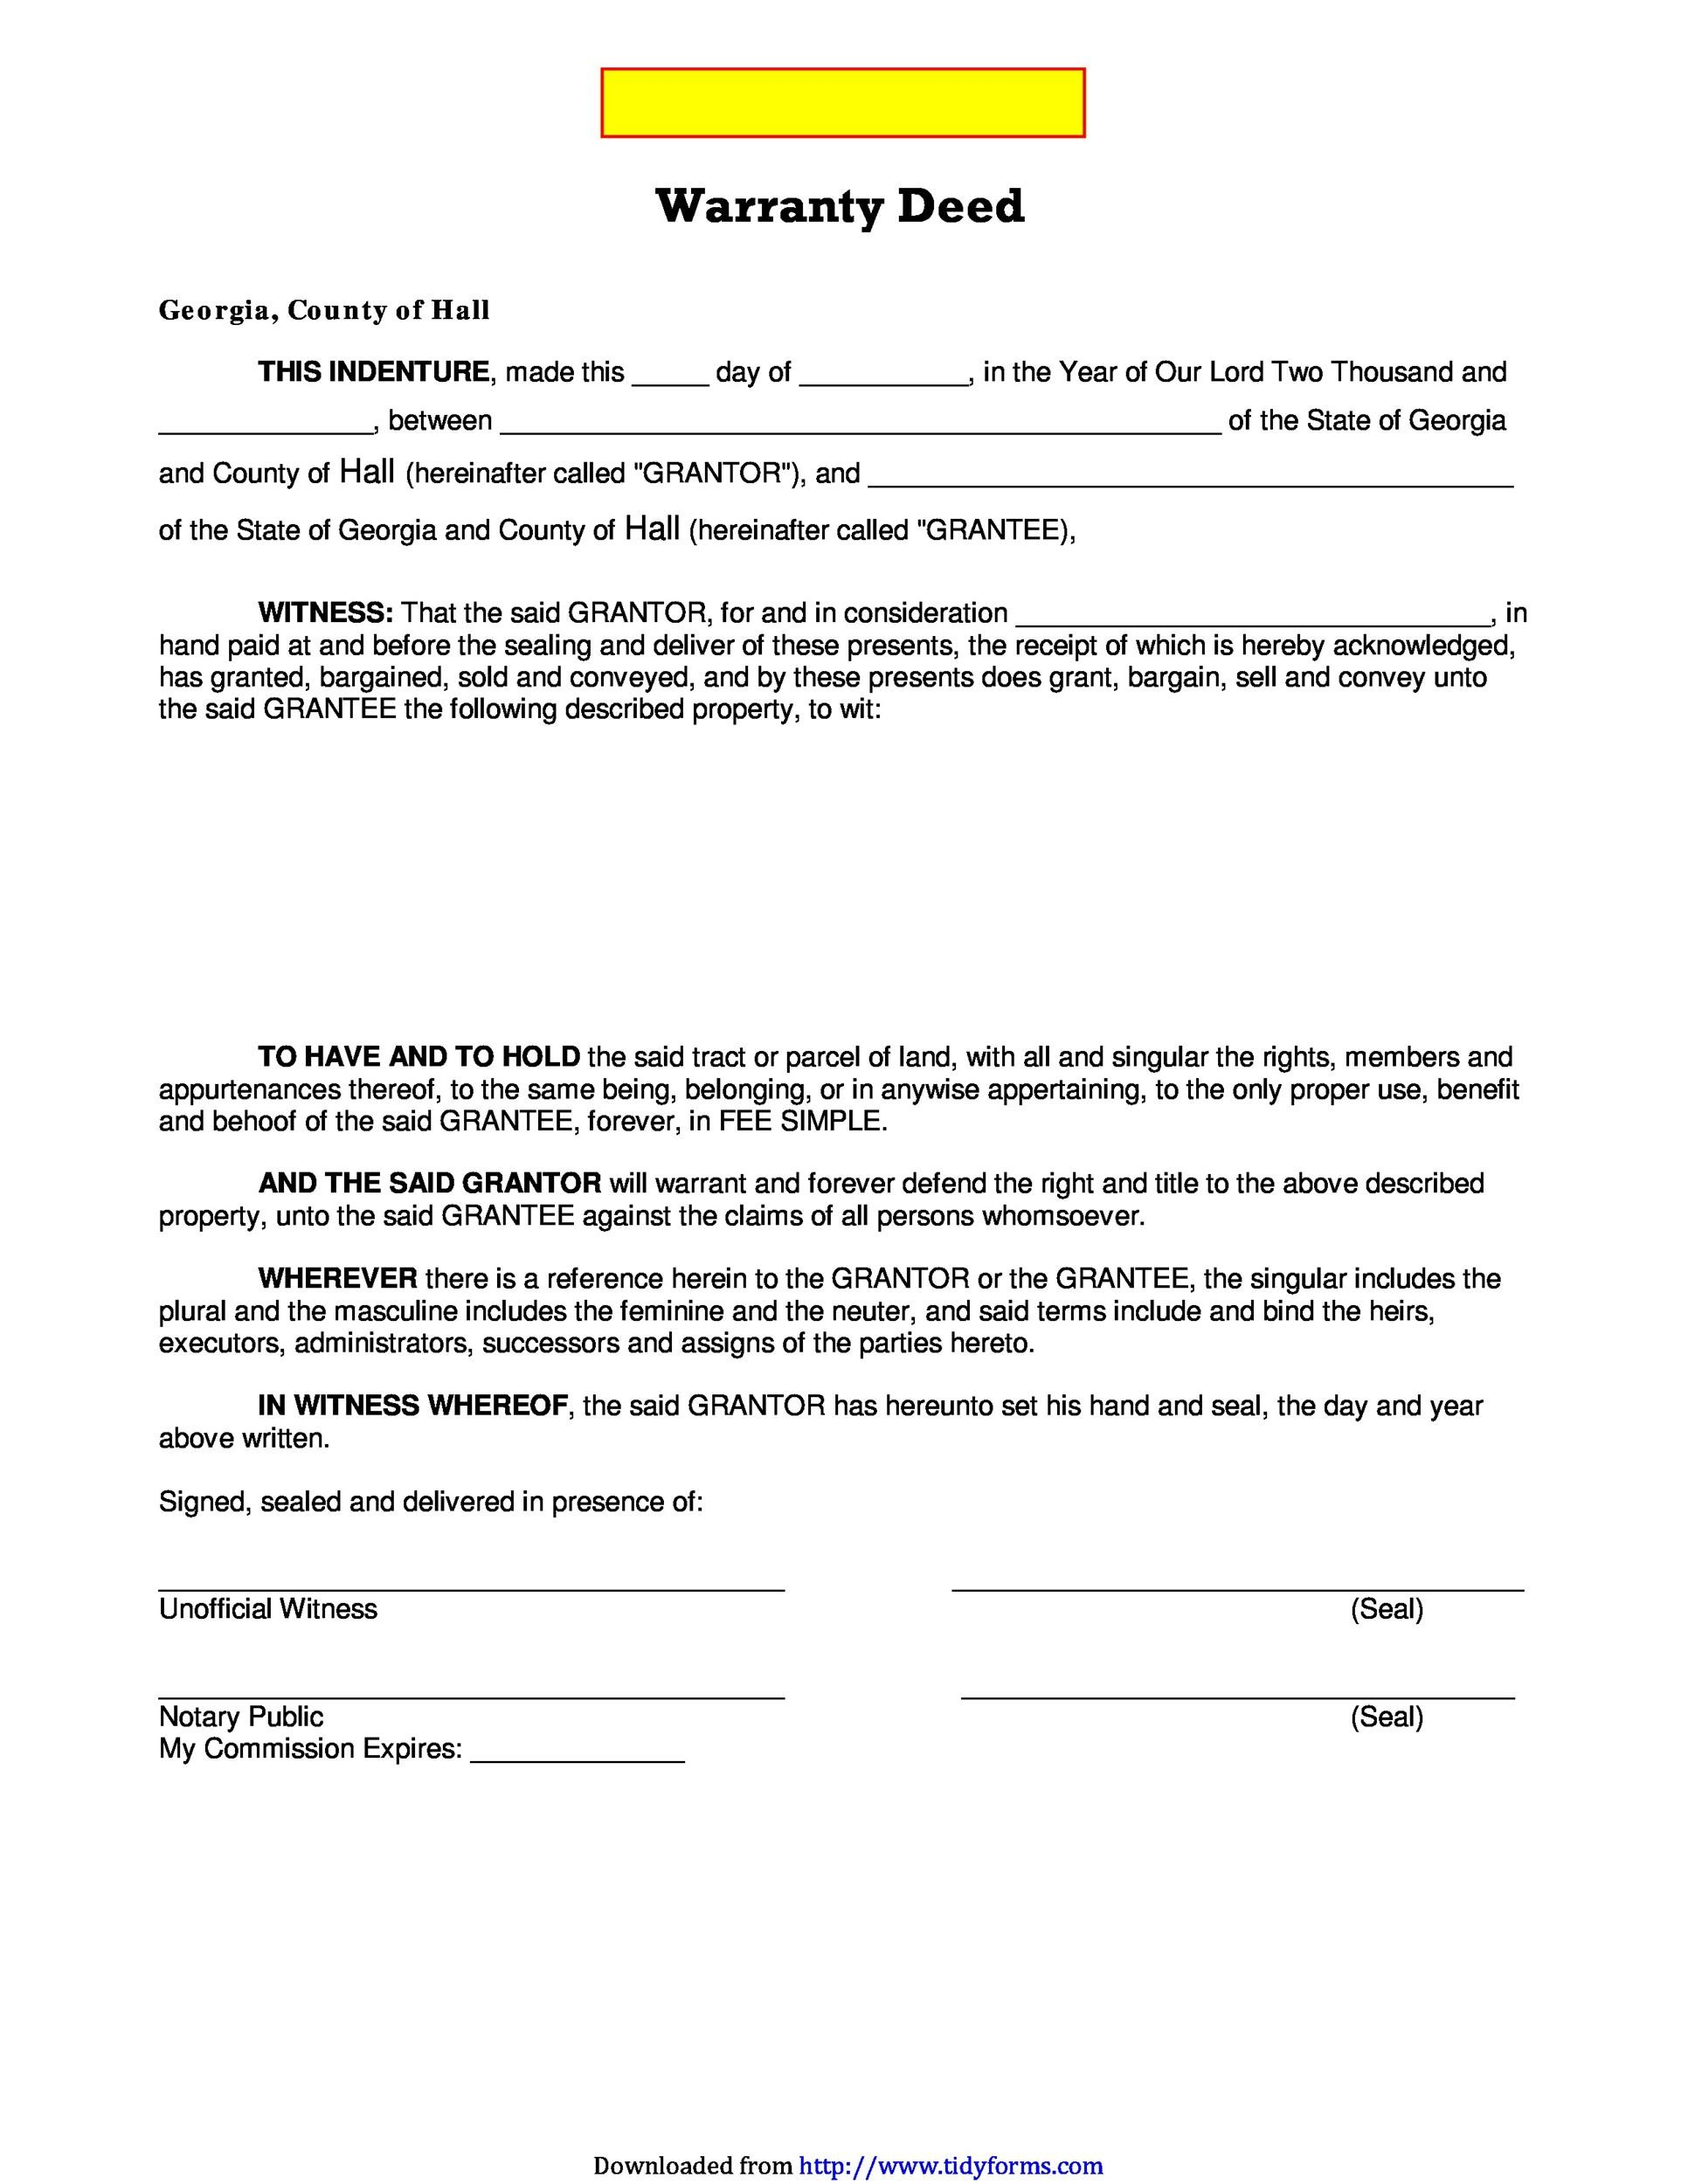 Free Warranty deed template 22